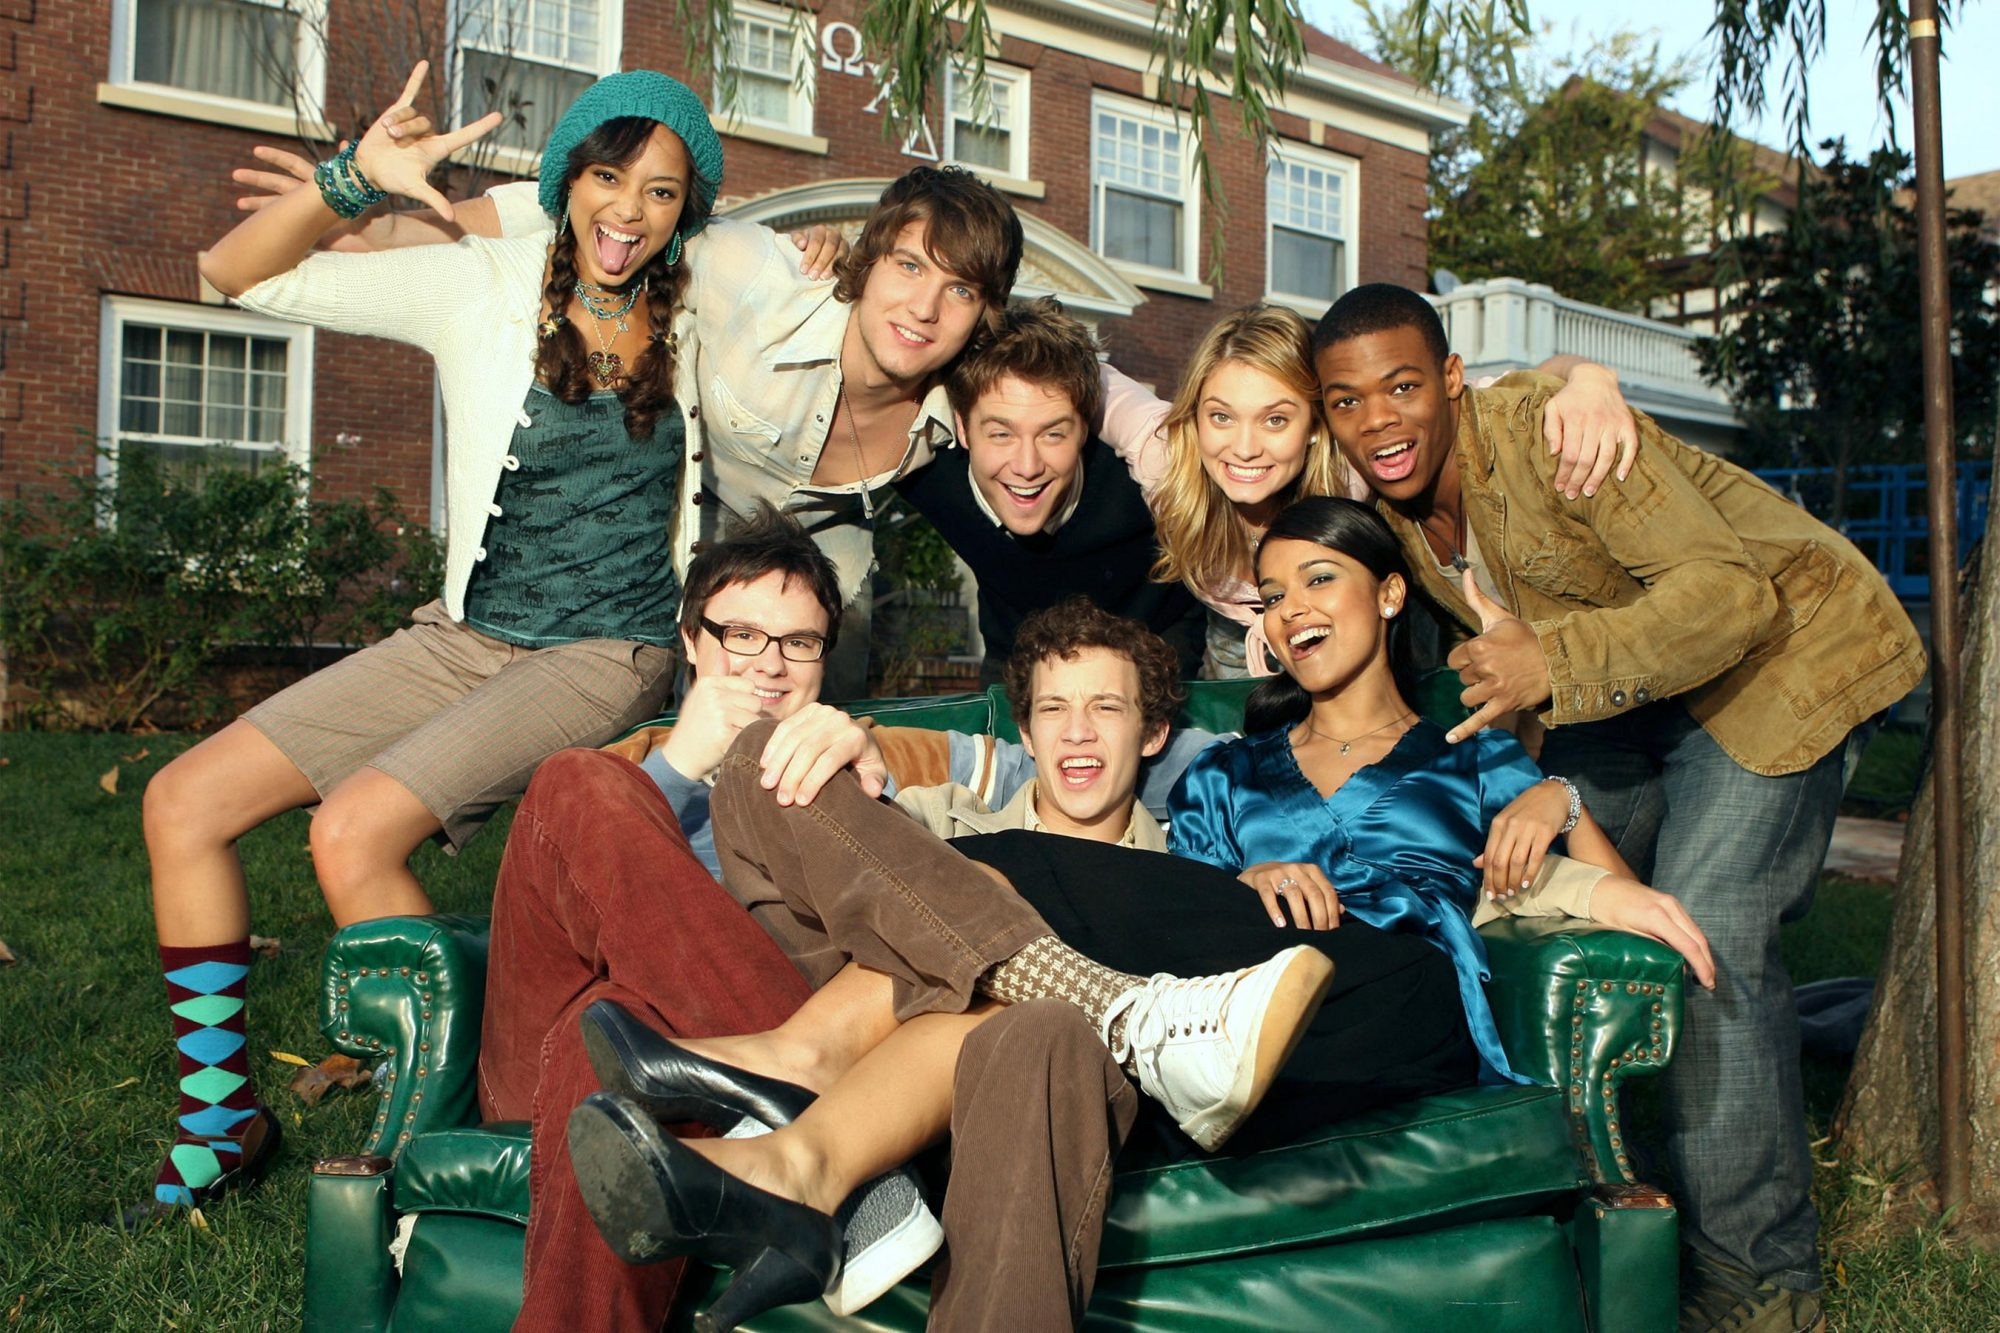 (BACK) AMBER STEVENS, SCOTT MICHAEL FOSTER, JAKE McDORMAN, SPENCER GRAMMER, PAUL JAMES - (FRONT) CLARK DUKE, JACOB ZACHAR, DILSHAD VADSARIA